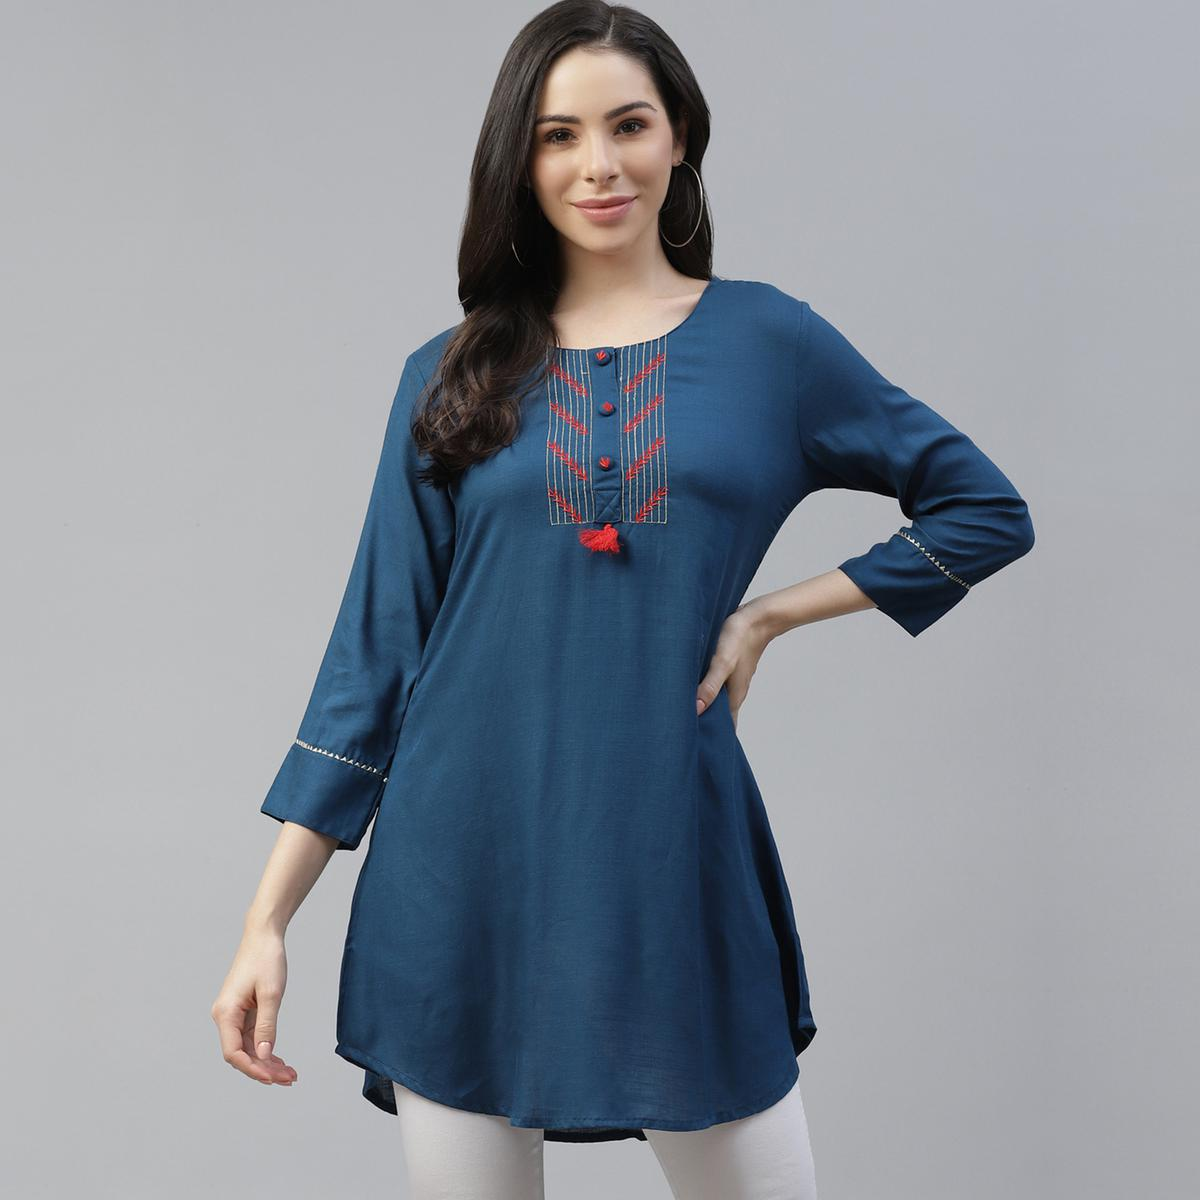 Cayman - Women Casual Teal Blue Solid Pure Cotton Kurti